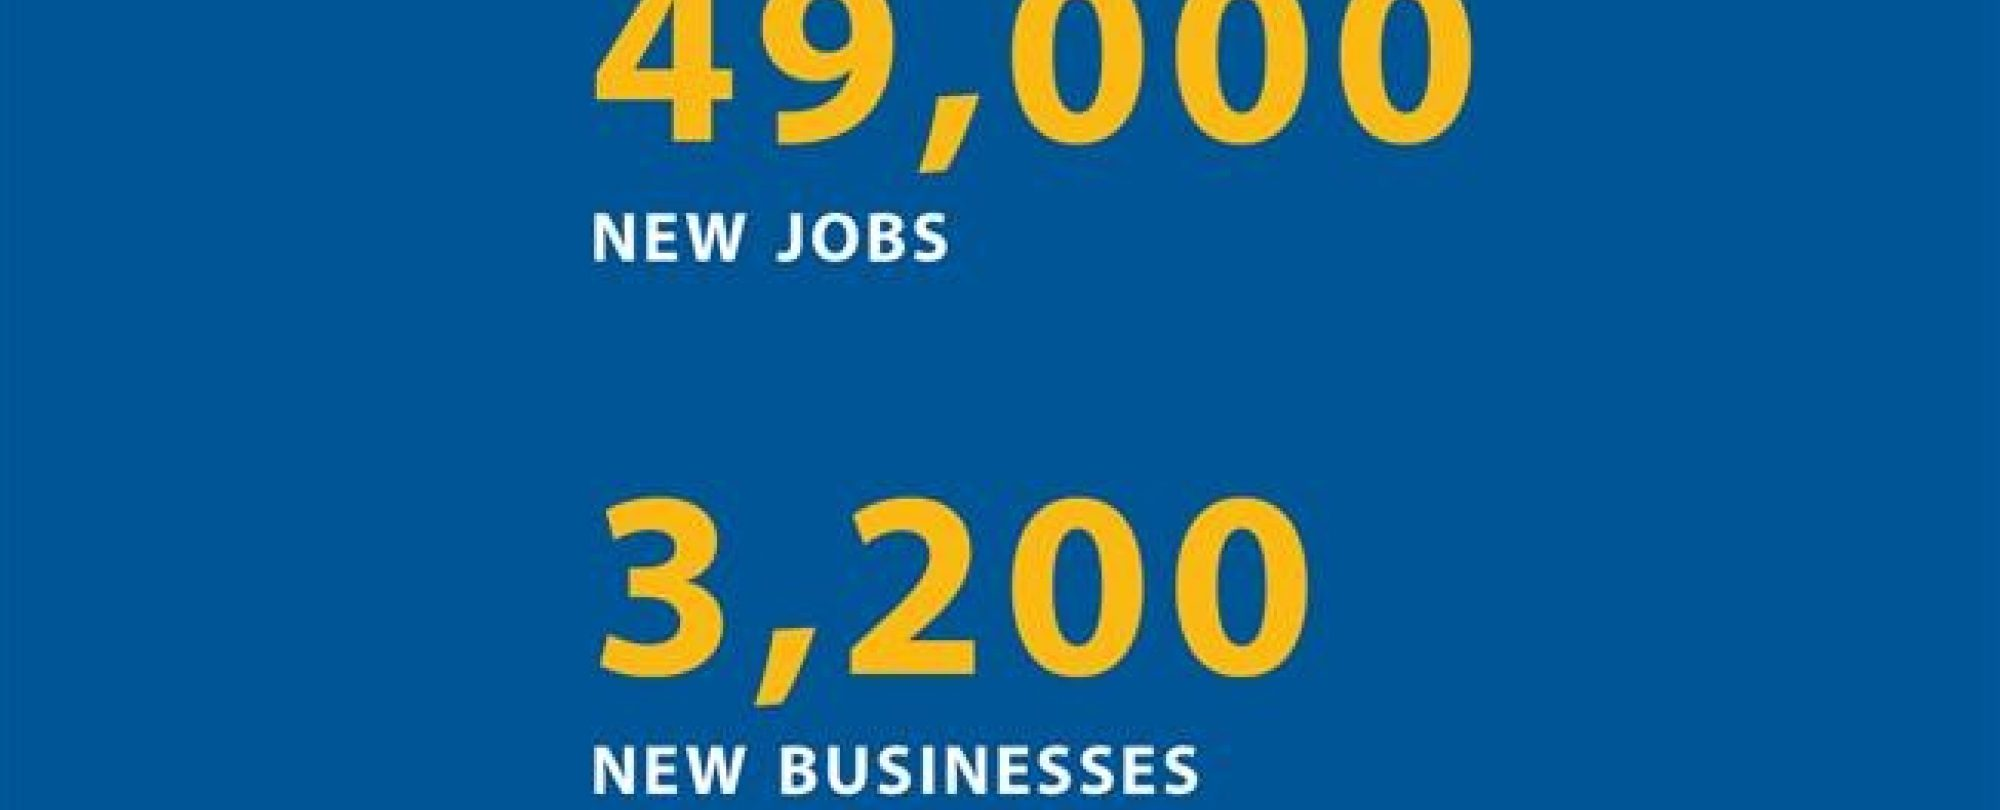 49,000 new jobs. 3200 new businesses.